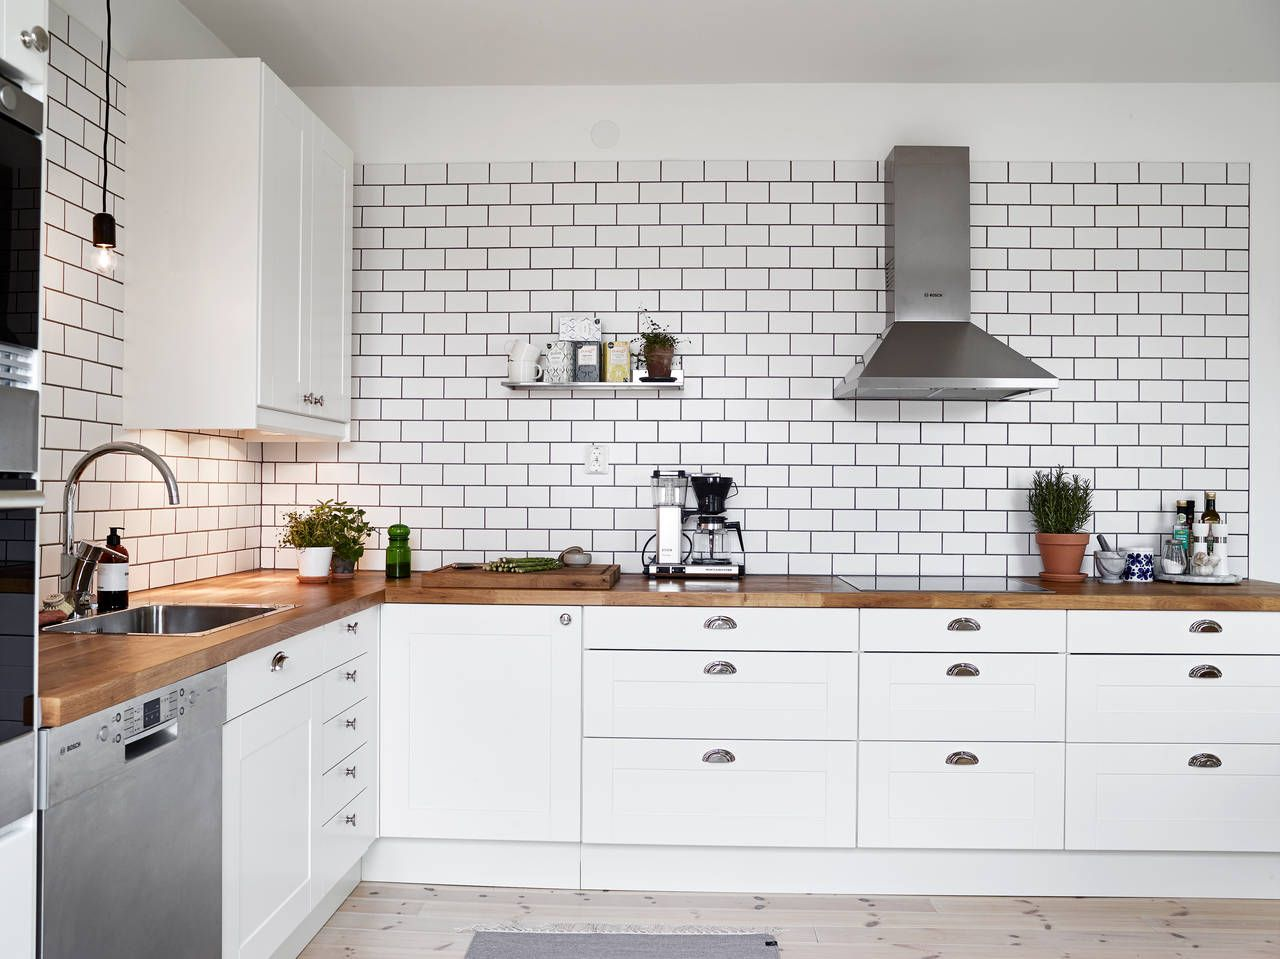 A White Tiles, Black Grout Kind Of Kitchen